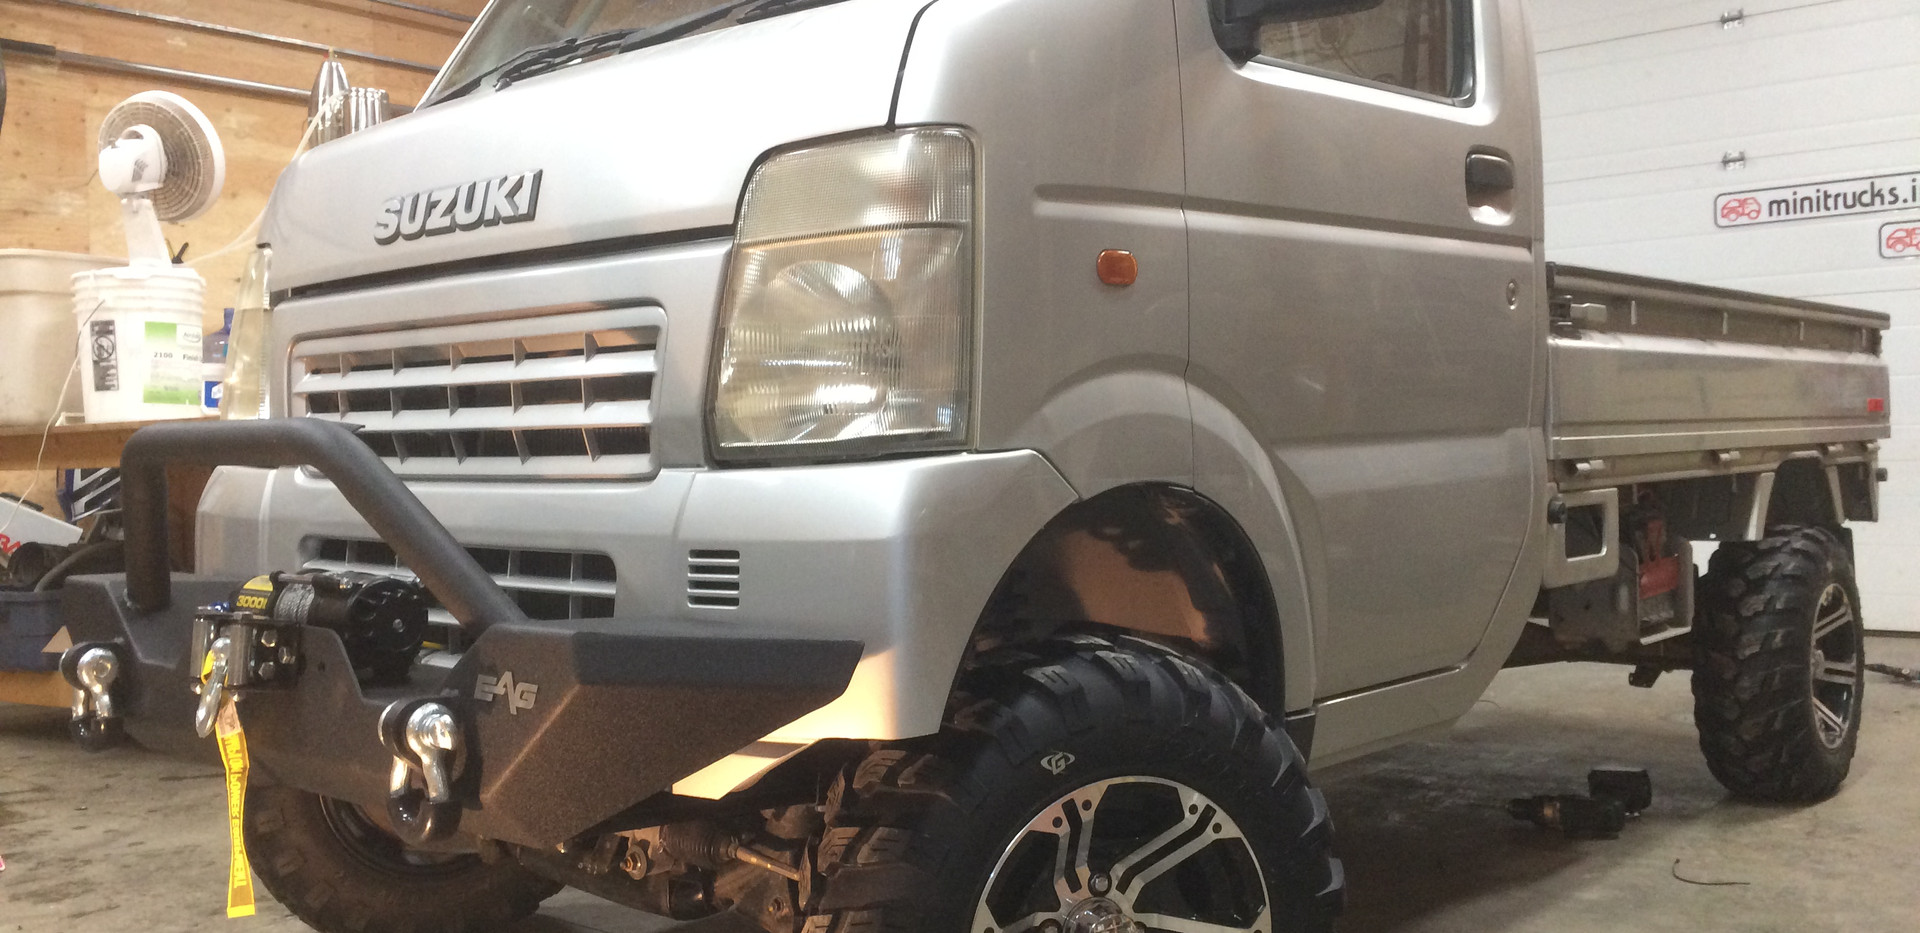 Suzuki carry winch bumper